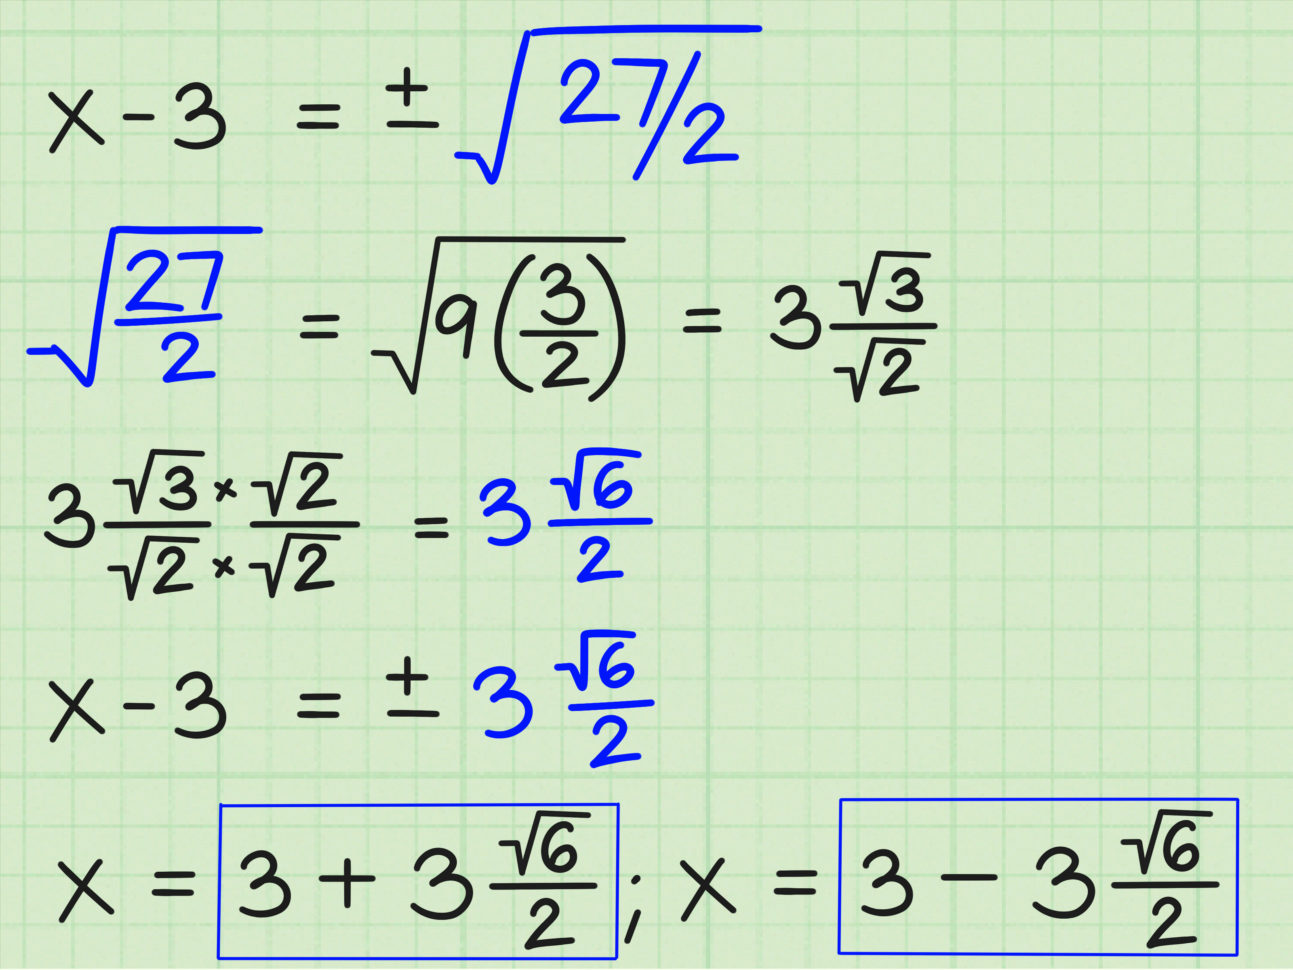 3 Ys To Solve Quadratic Equations Wikihow